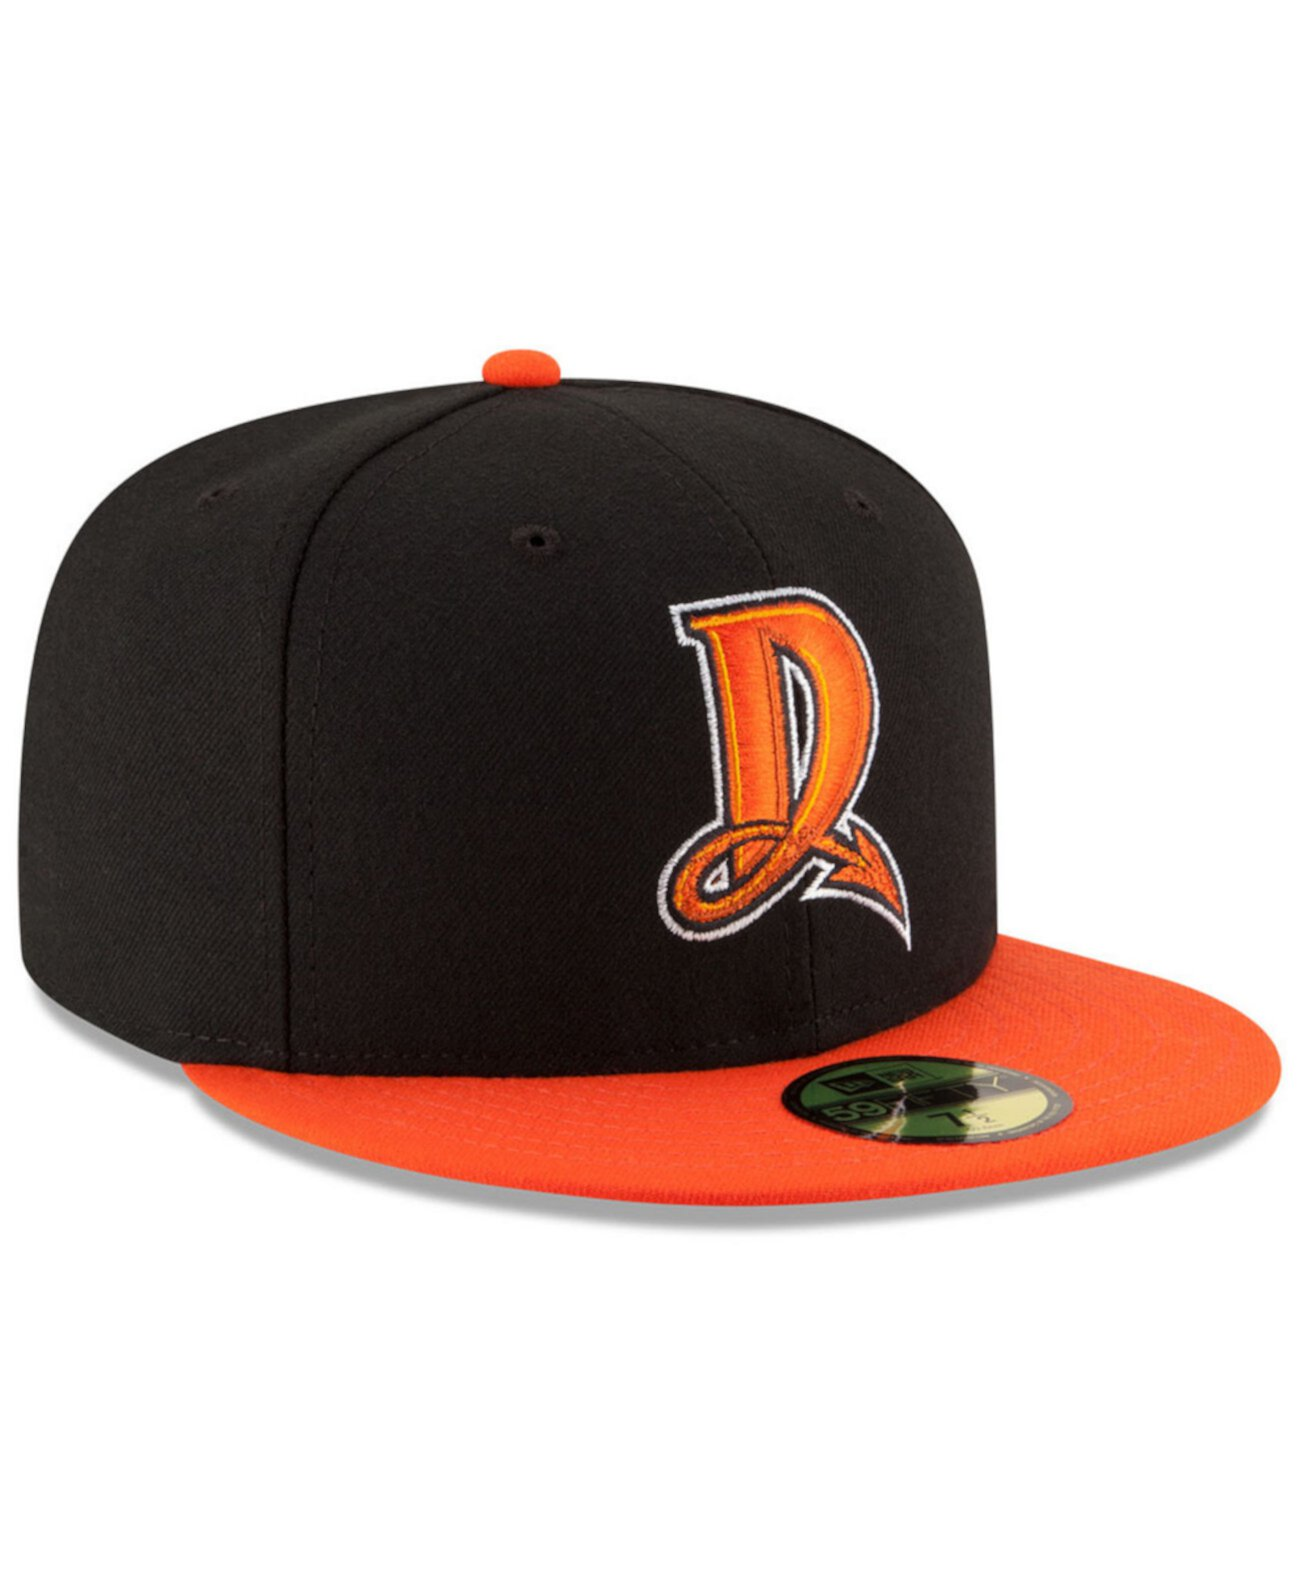 Dayton Dragons AC 59FIFTY Установленная кепка New Era